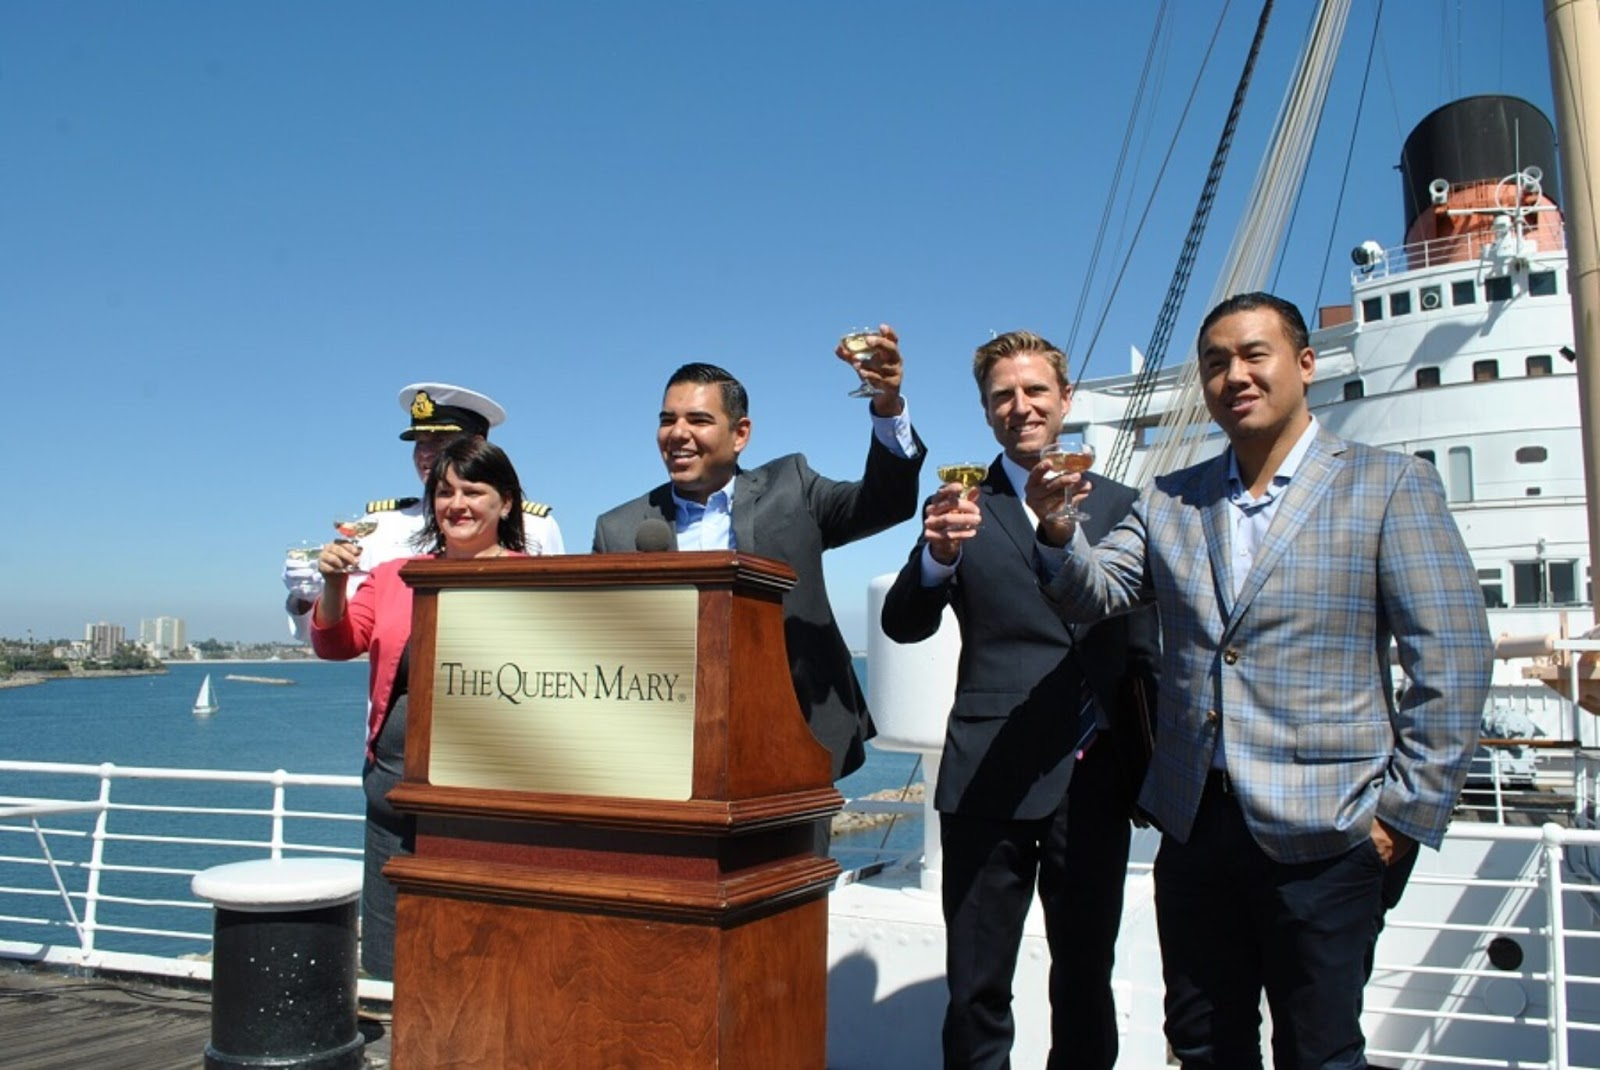 From left, Queen Mary Honorary Commodore Everett Hoard, former District 2 Councilwoman Jeannine Pearce, Long Beach Mayor Robert Garcia and Urban Commons Principals Taylor Woods and Howard Wu celebrate on the Queen Mary in 2016. Photo by Asia Morris.